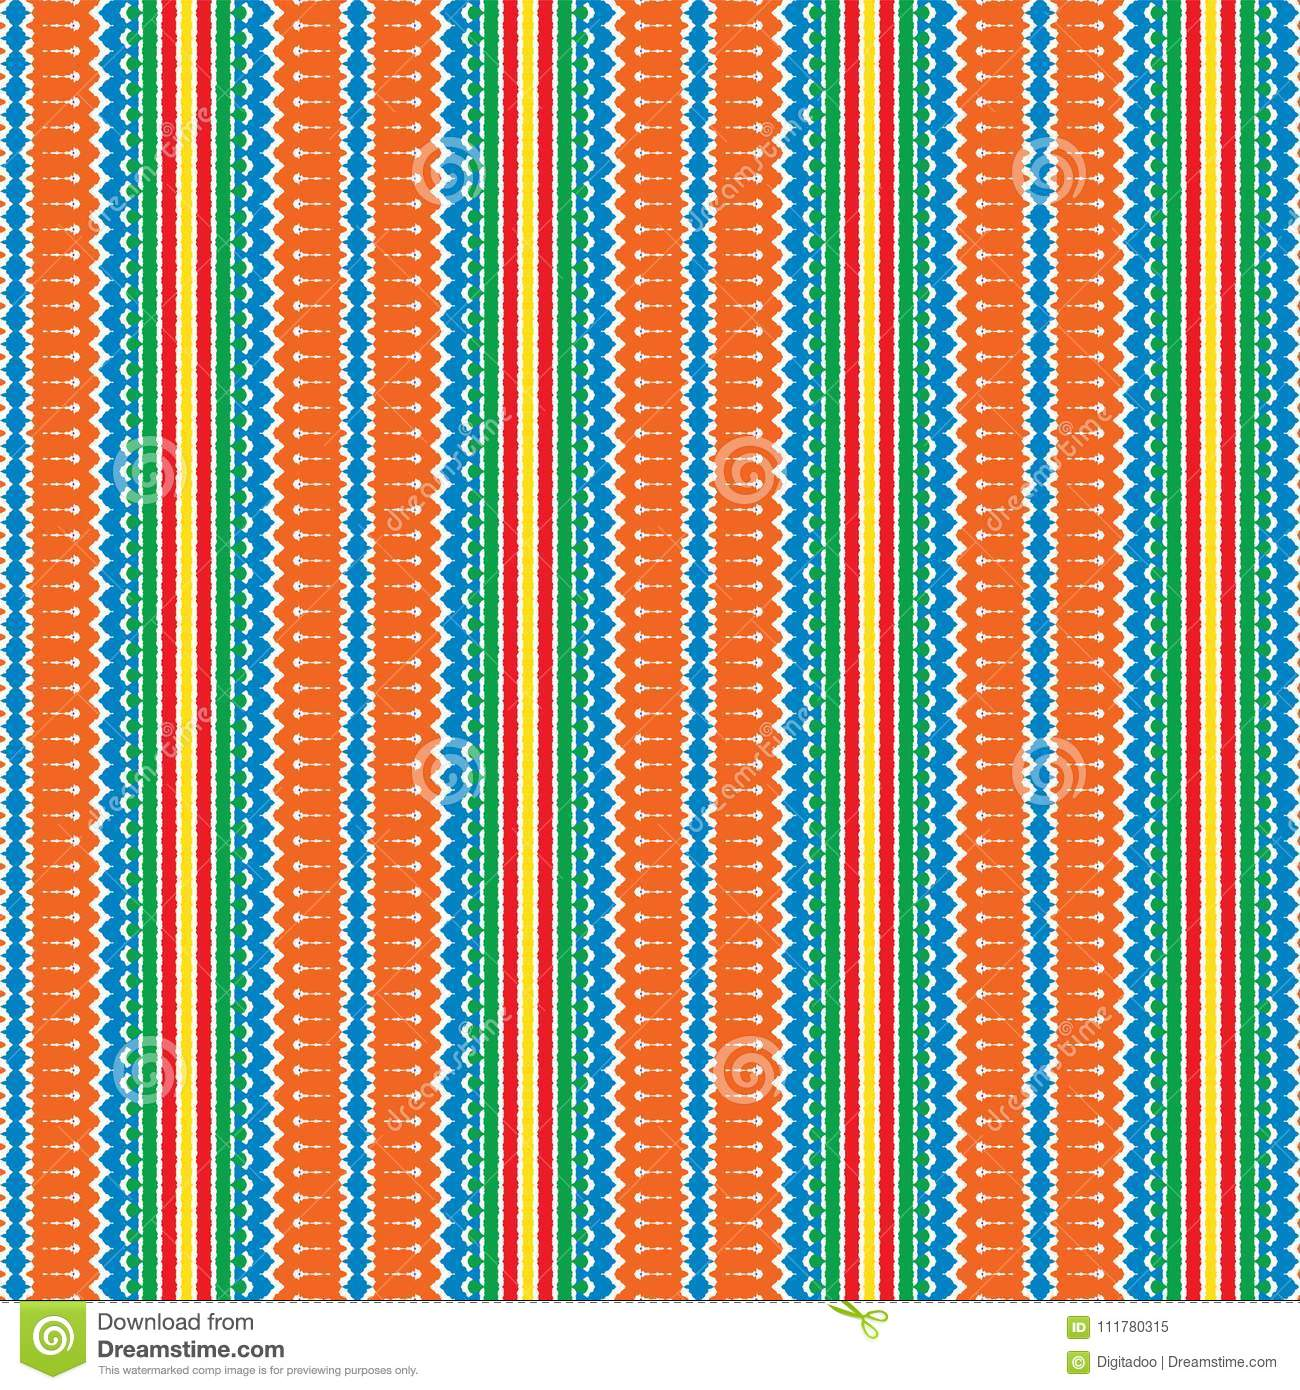 Colorful Scribble Vintage Ethnic Stripe Pattern Background